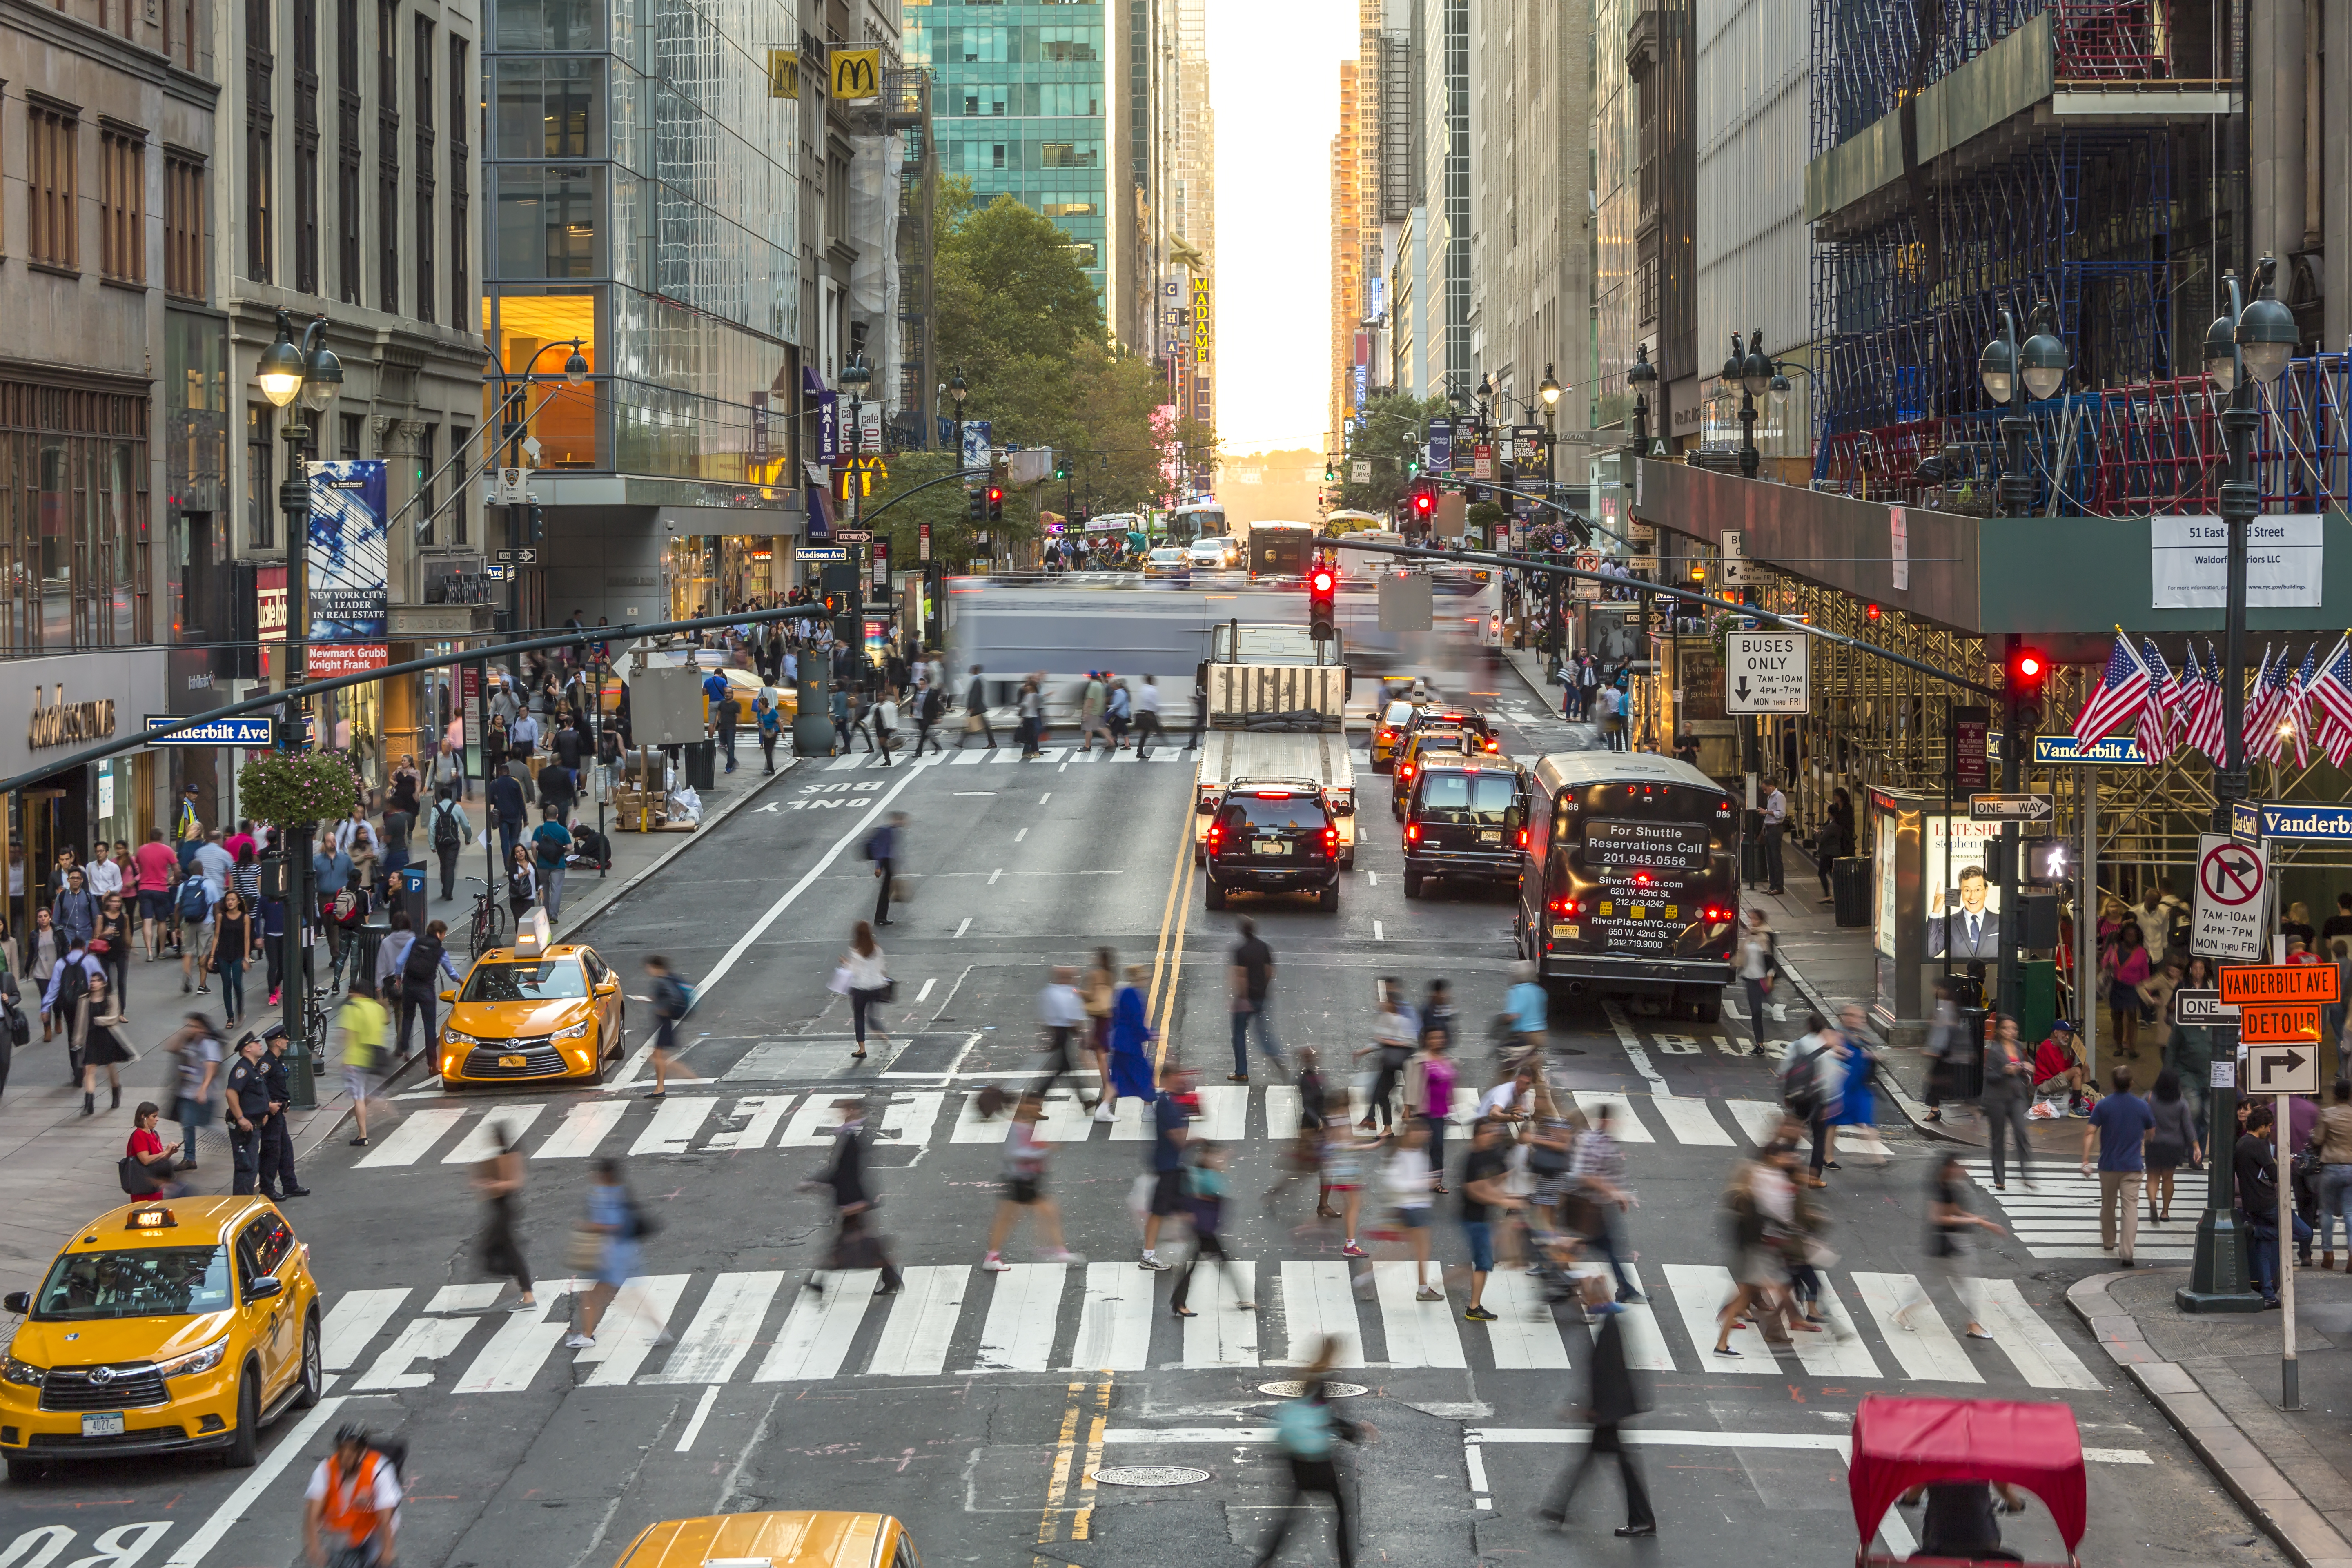 A busy Avenue in New York City.